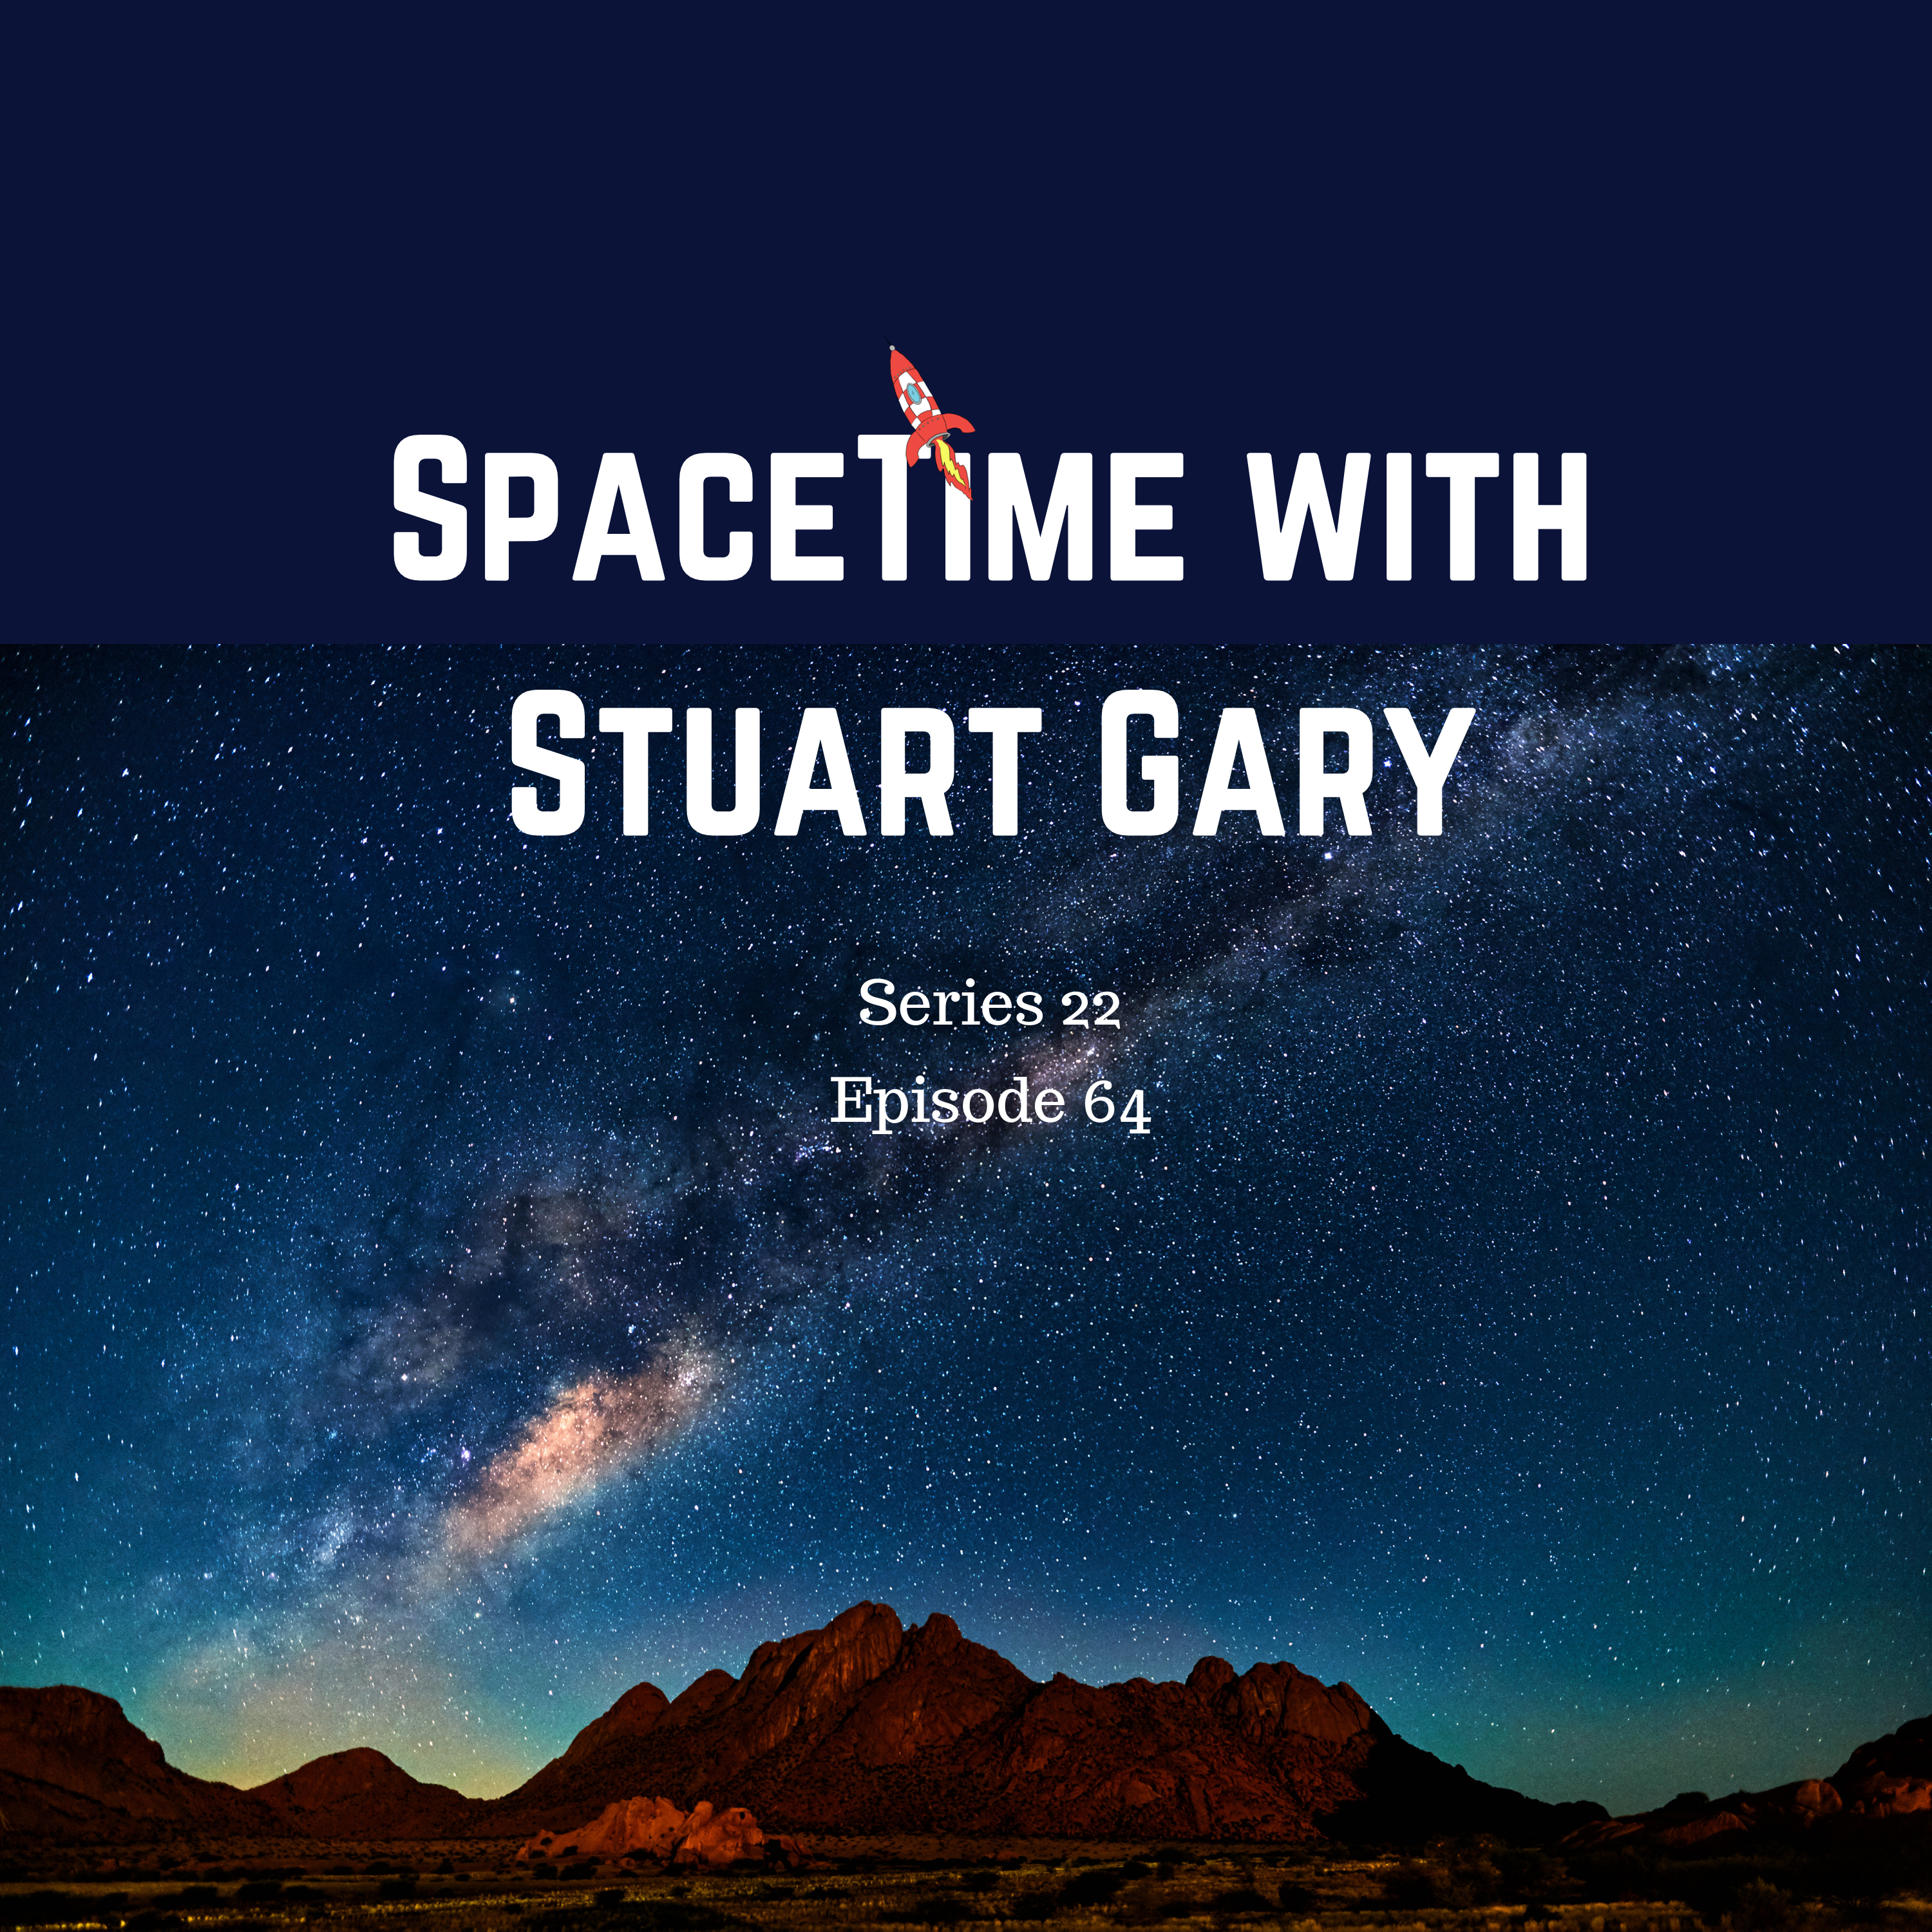 SpaceTime with Stuart Gary | Podbay